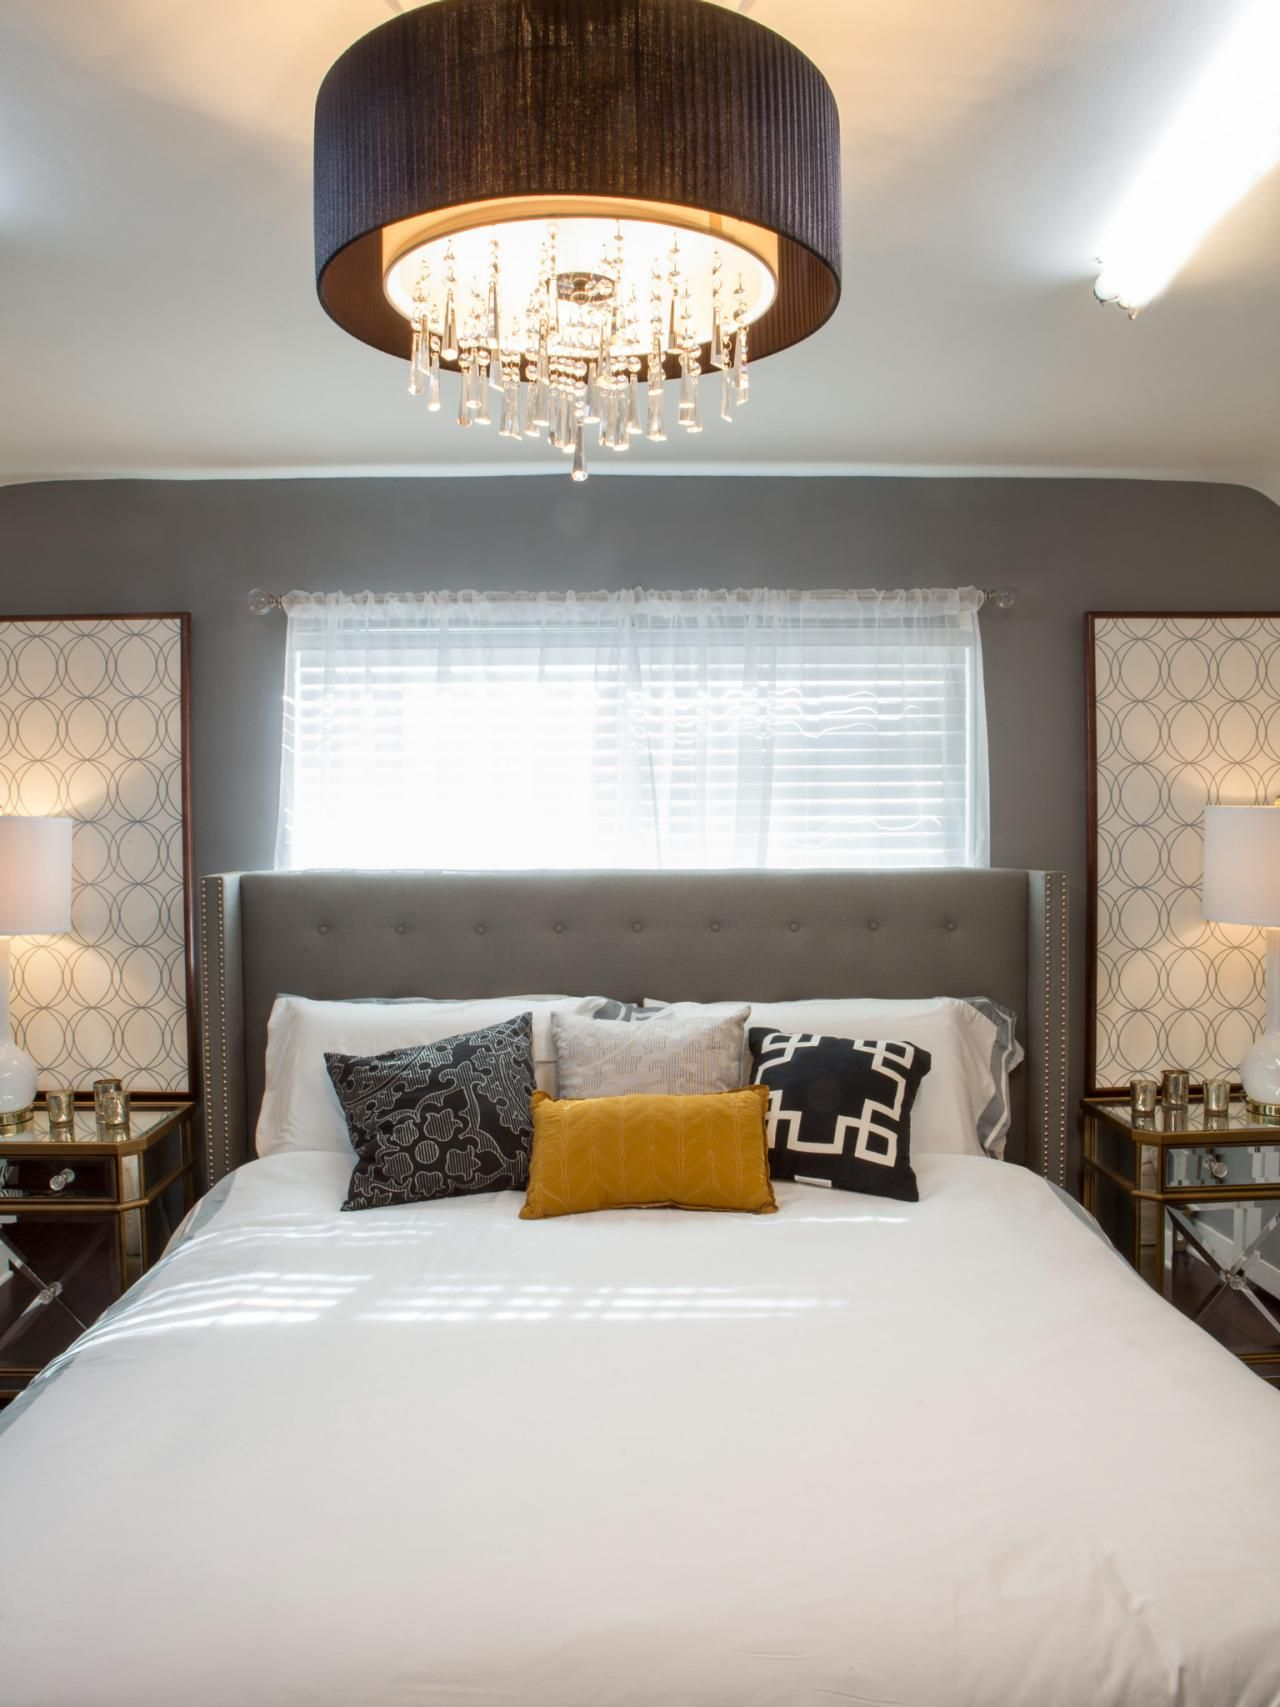 This bedroom gets a sophisticated look from midcentury modern furnishings. The focal point of the room is a large circular drum ceiling light with dangling prisms that shines light on the bed with a nail head upholstered headboard.